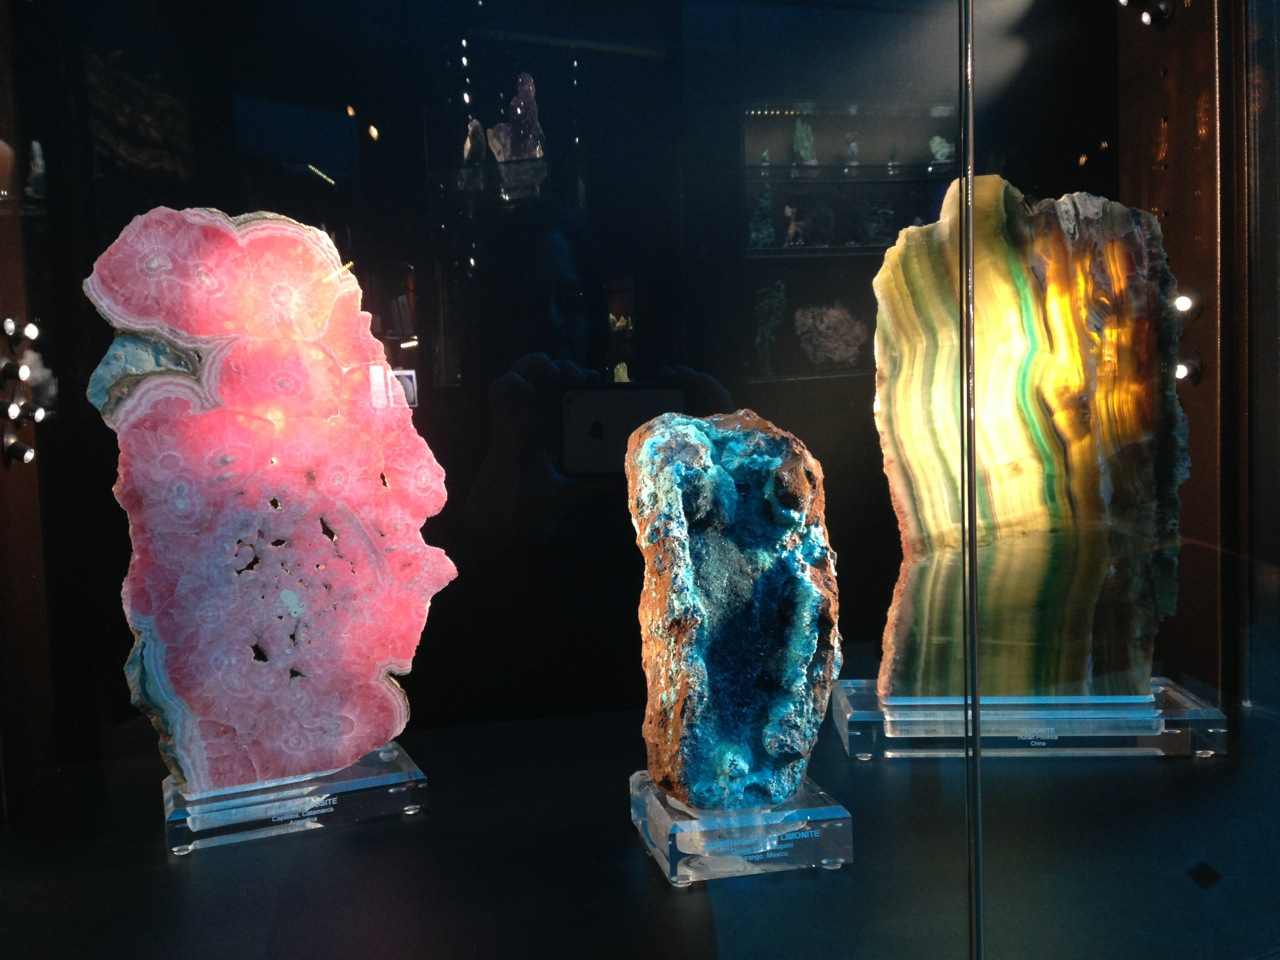 At the Mineralogical Museum